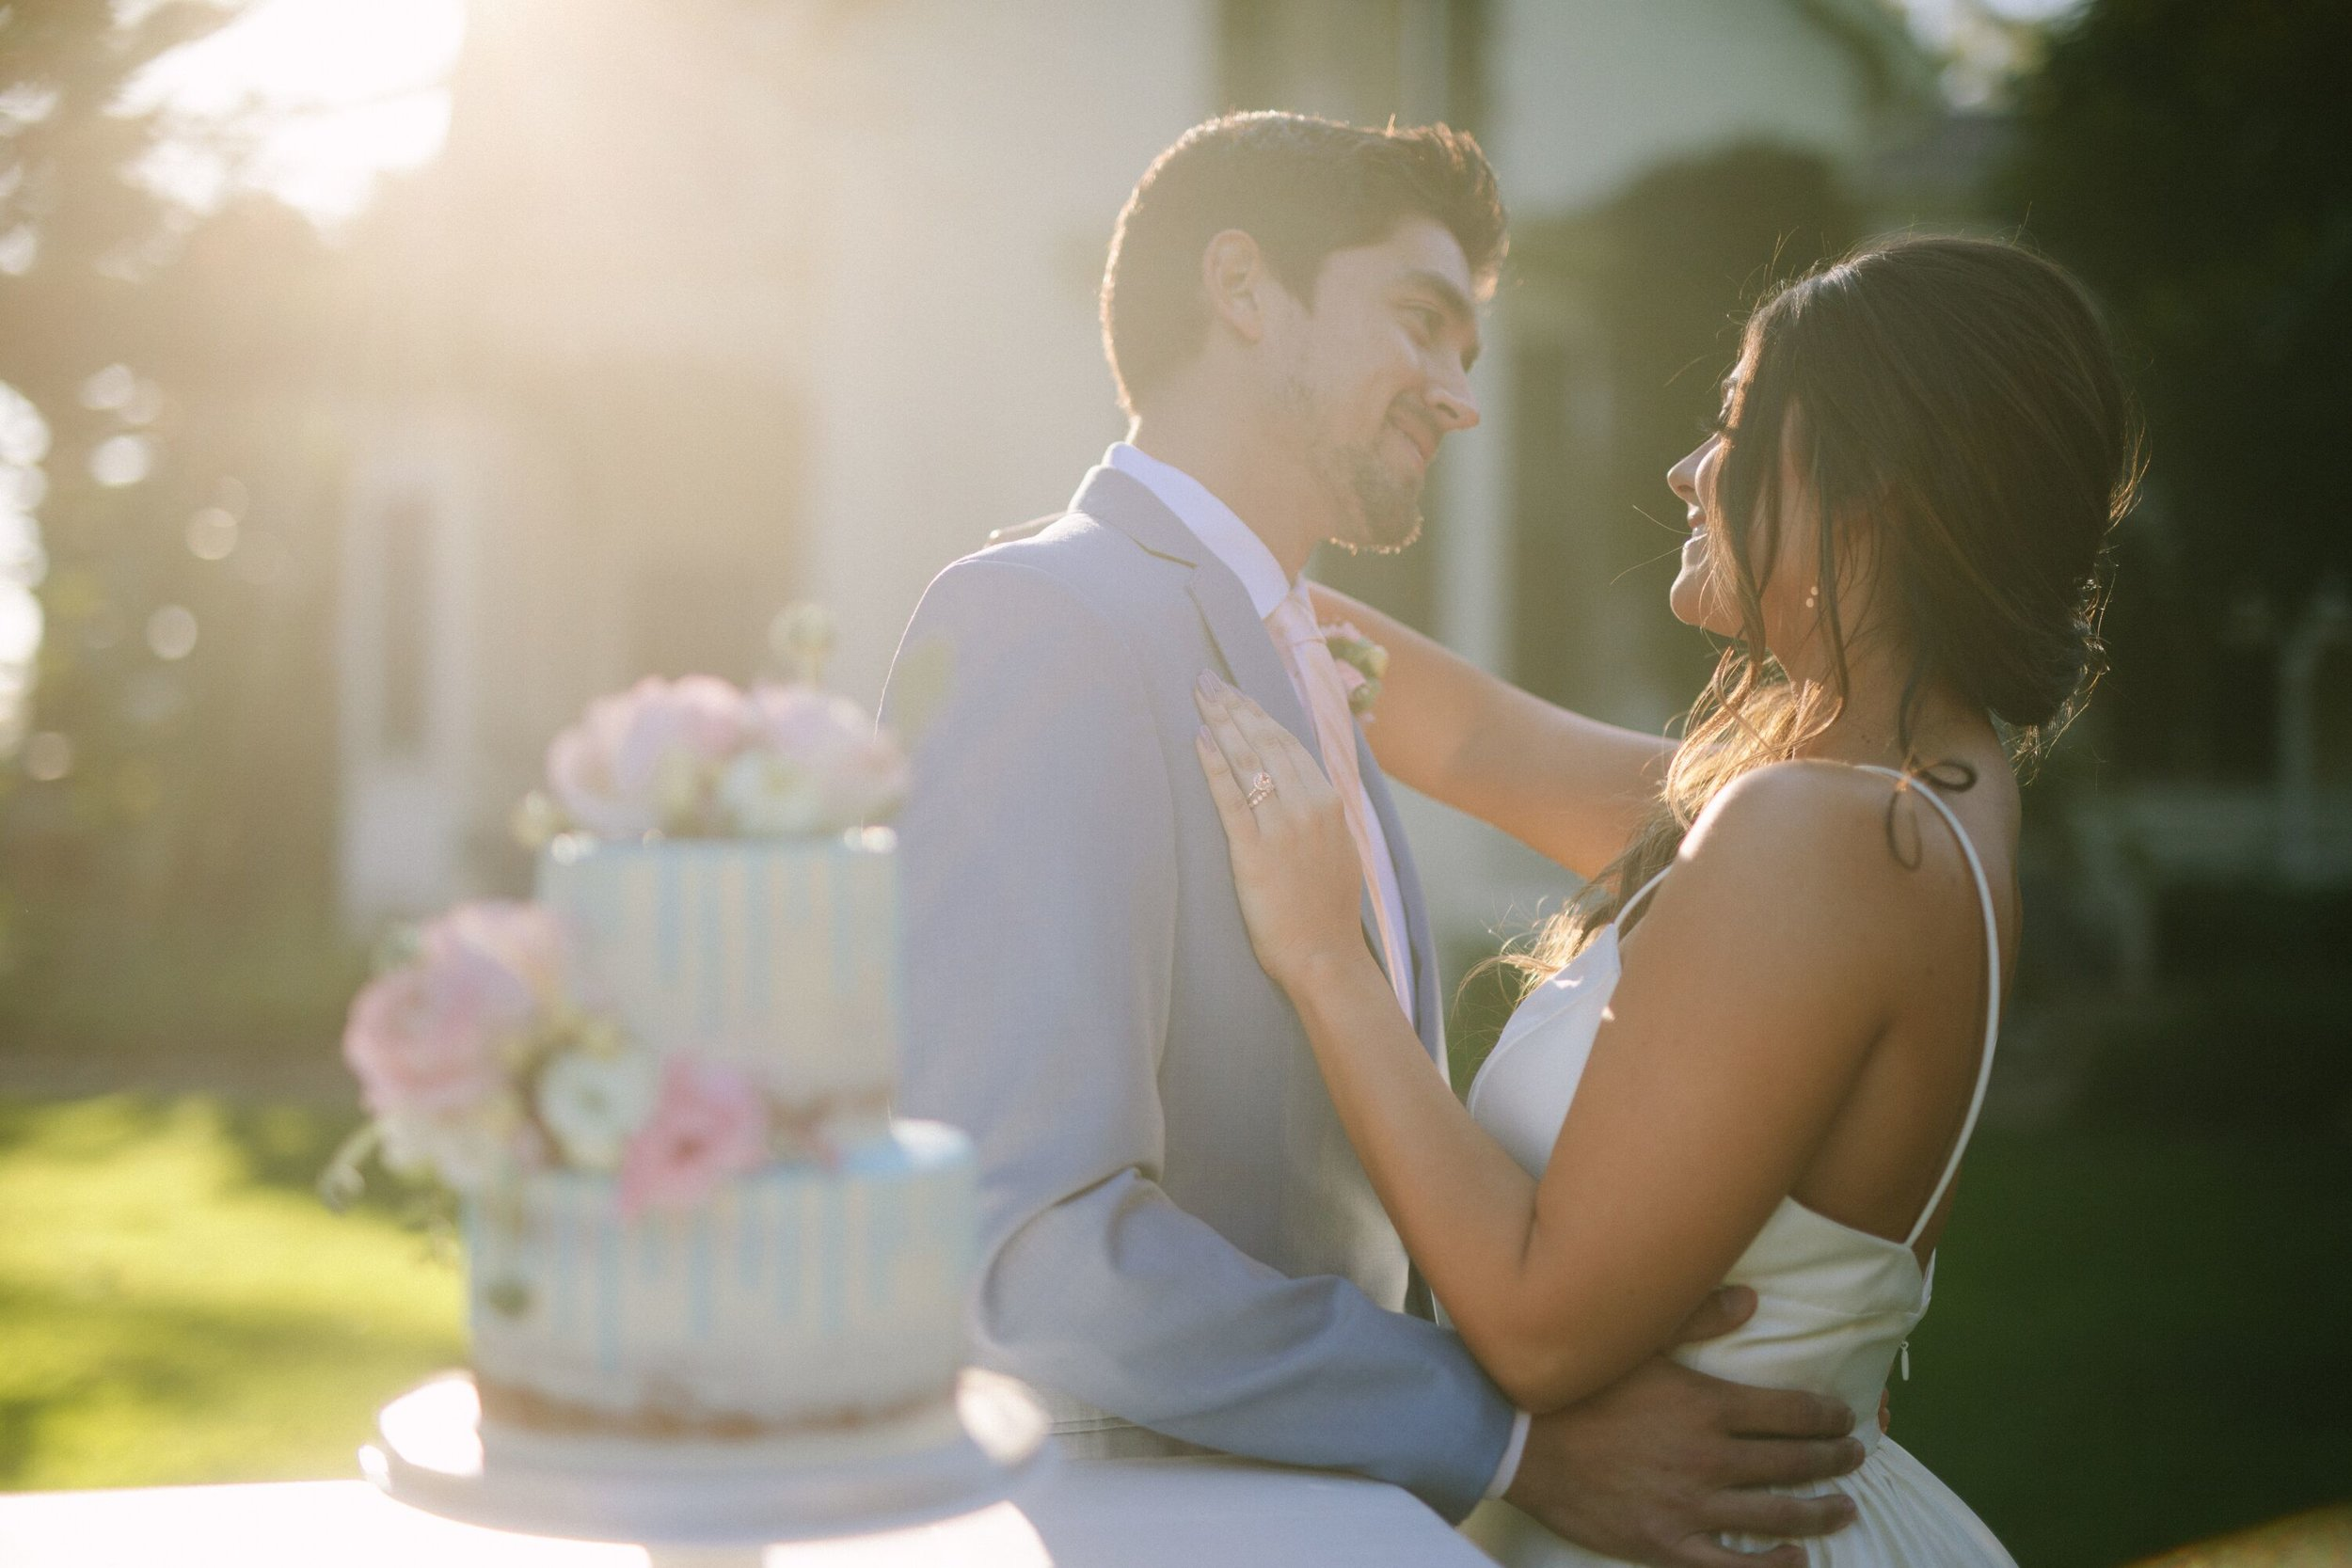 www.santabarbarawedding.com | Photographer: Patrick Ang | Venue: Rancho La Patera & Stow House | Wedding Planner: Elyse Rowen of Elyse Events | Bride and Groom with Wedding Cake